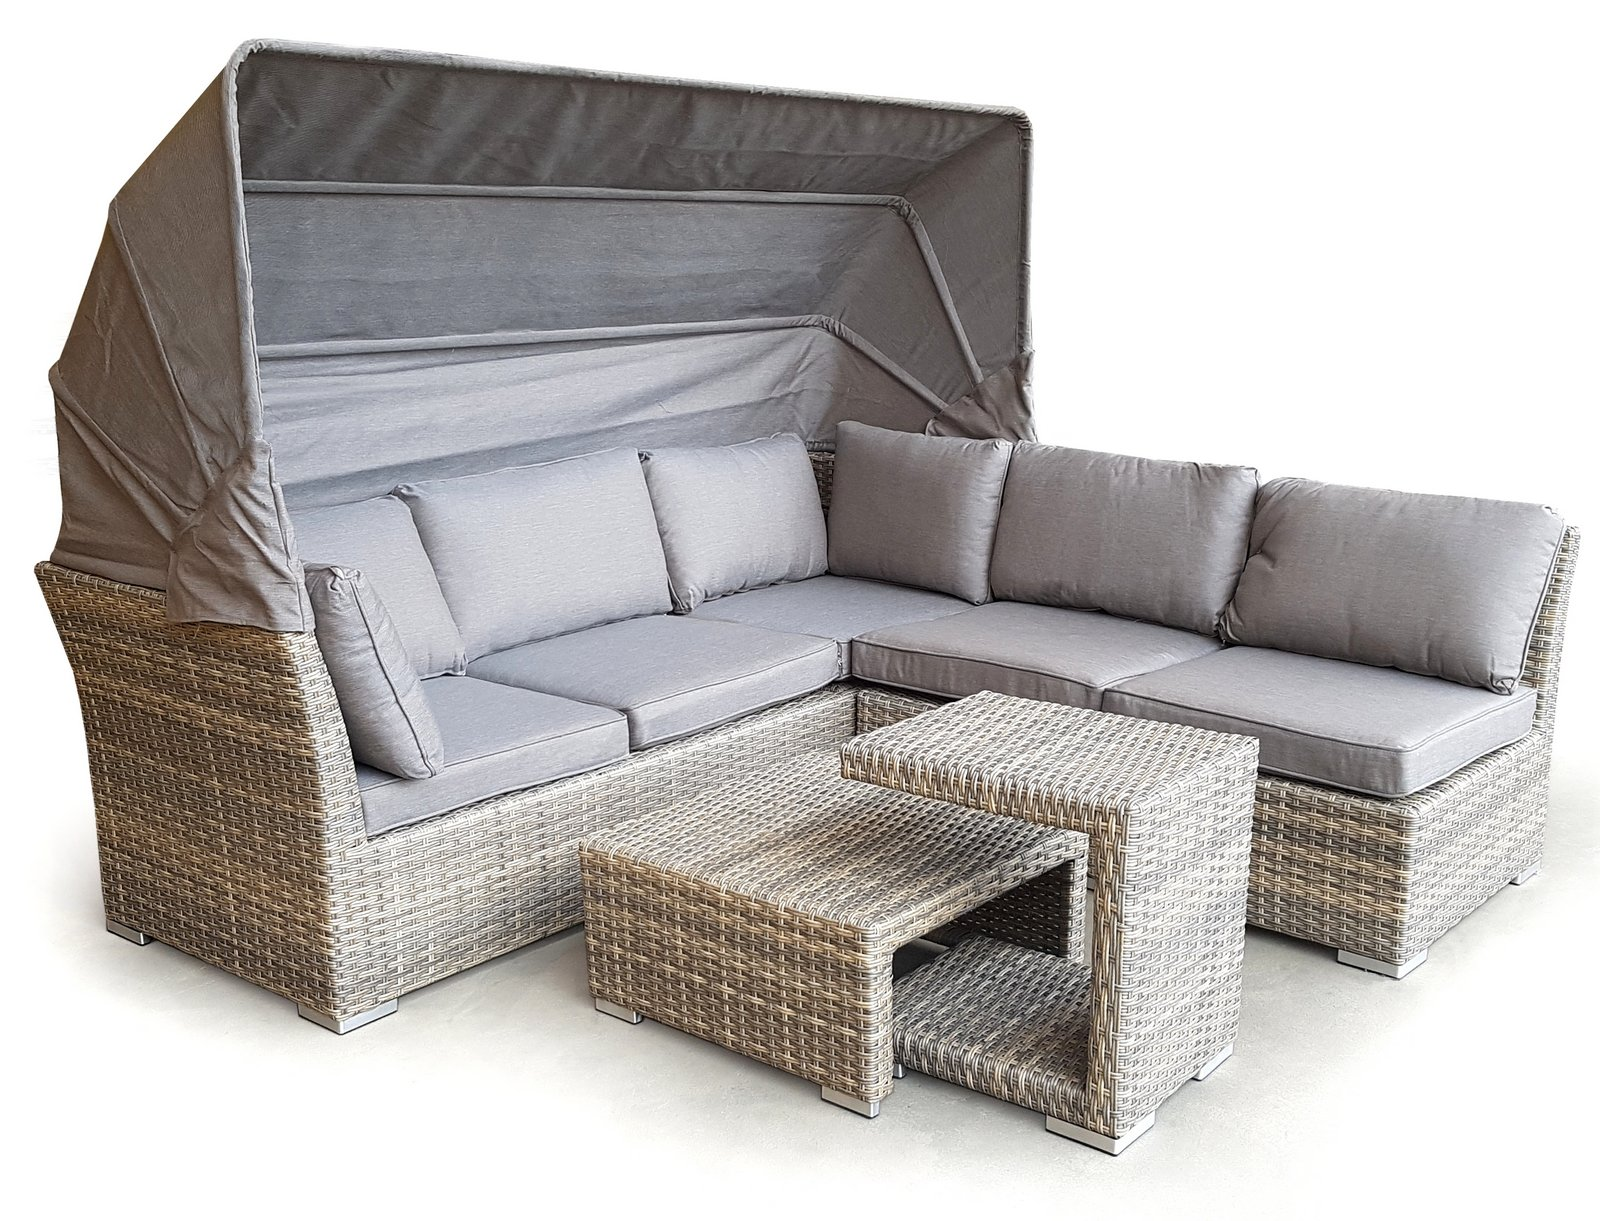 osoltus gartenlounge cabrio lounge strandkorb palma mit. Black Bedroom Furniture Sets. Home Design Ideas